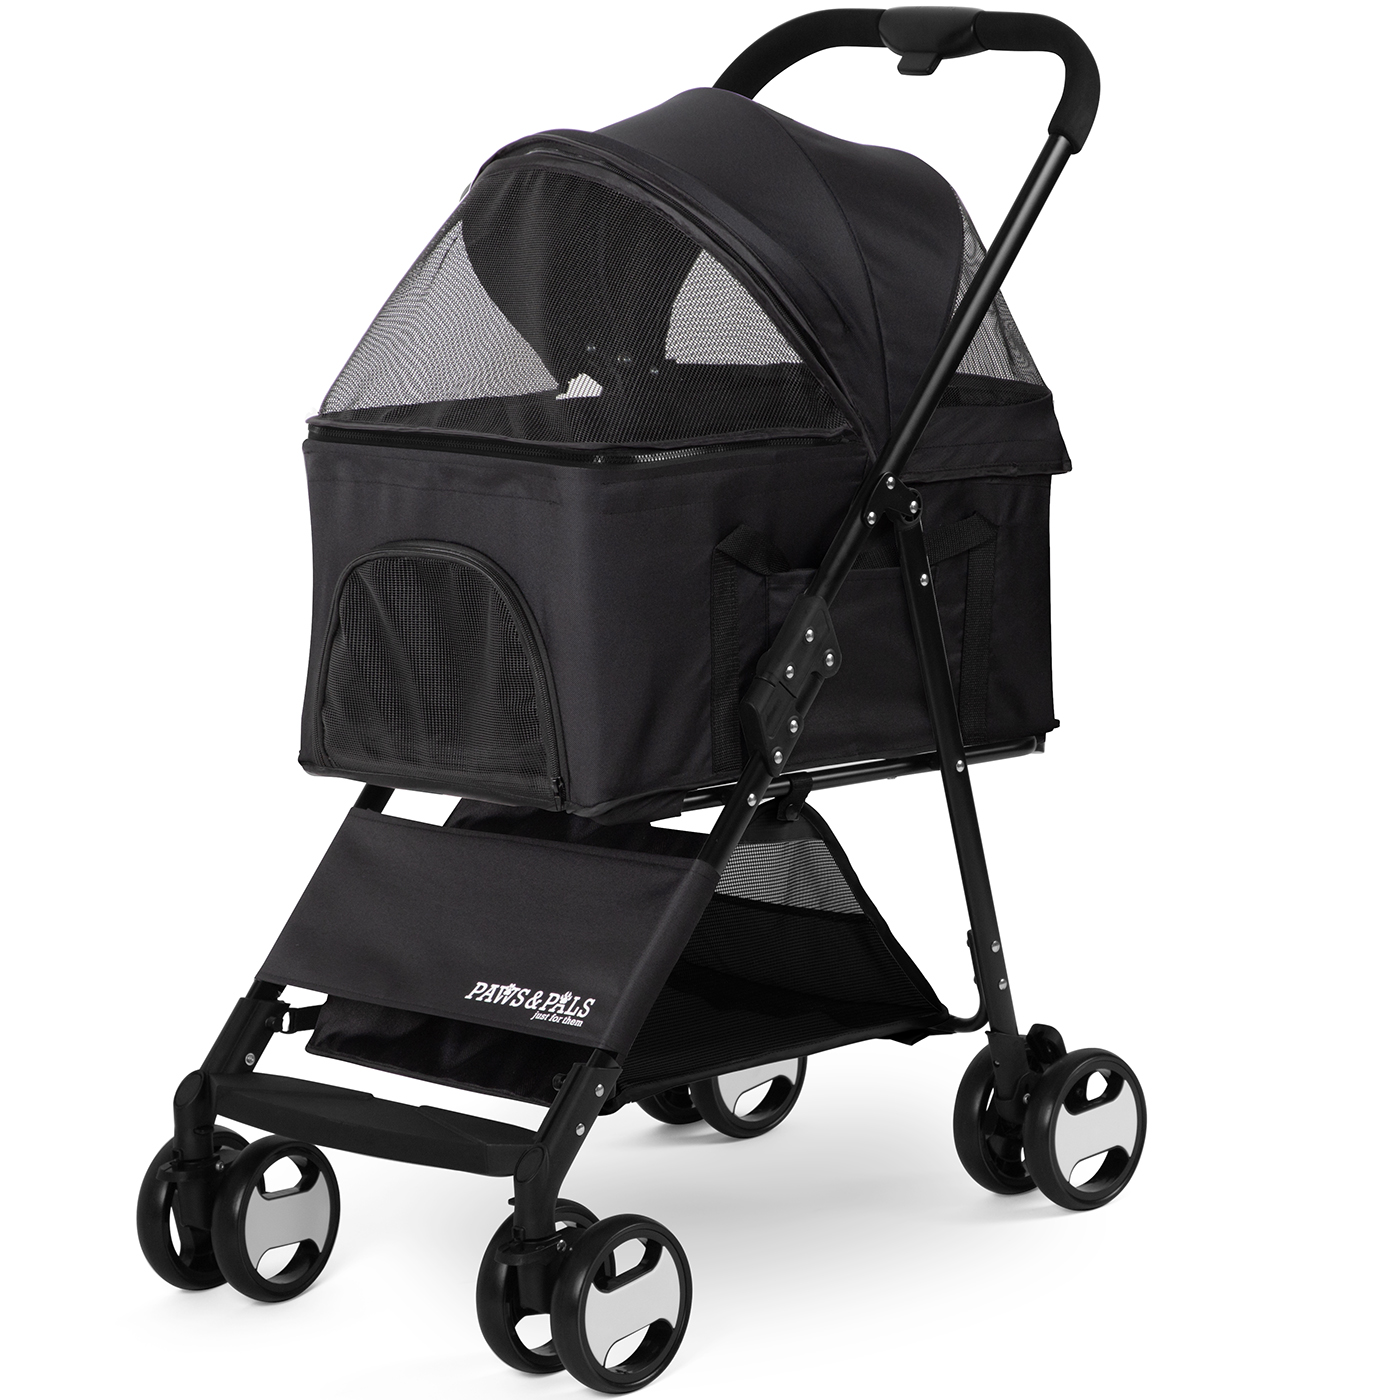 Pet Stroller 2-In-1 Detachable Carrier Dog Cat 4 Wheel Foldable Travel Walk by Paws & Pals